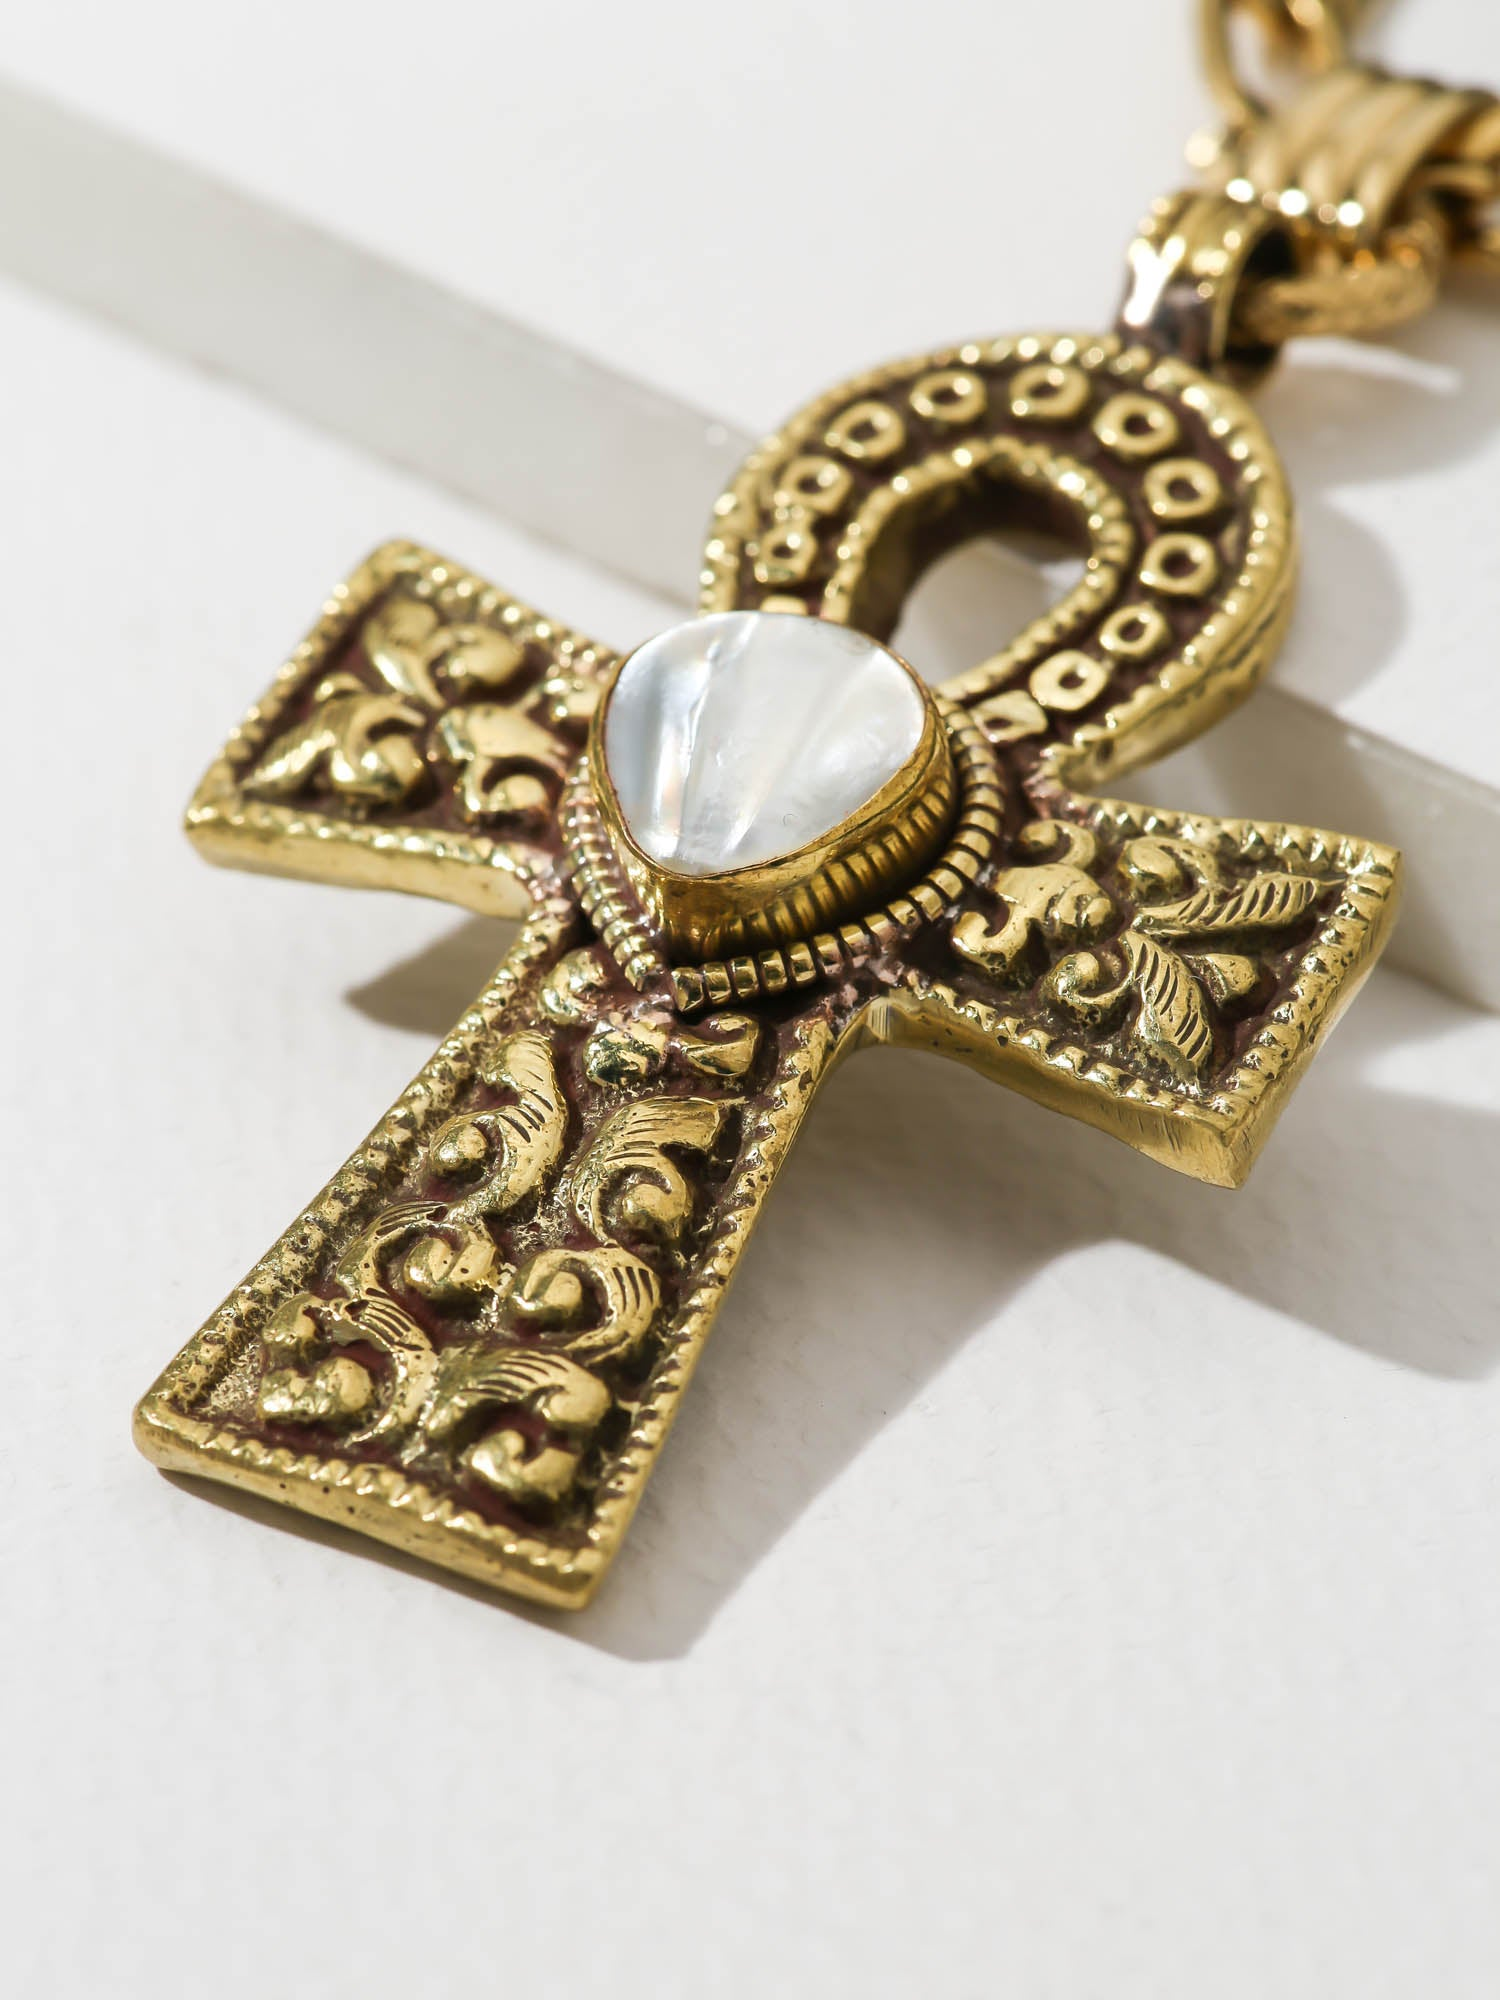 The Moonstone Ankh Necklace